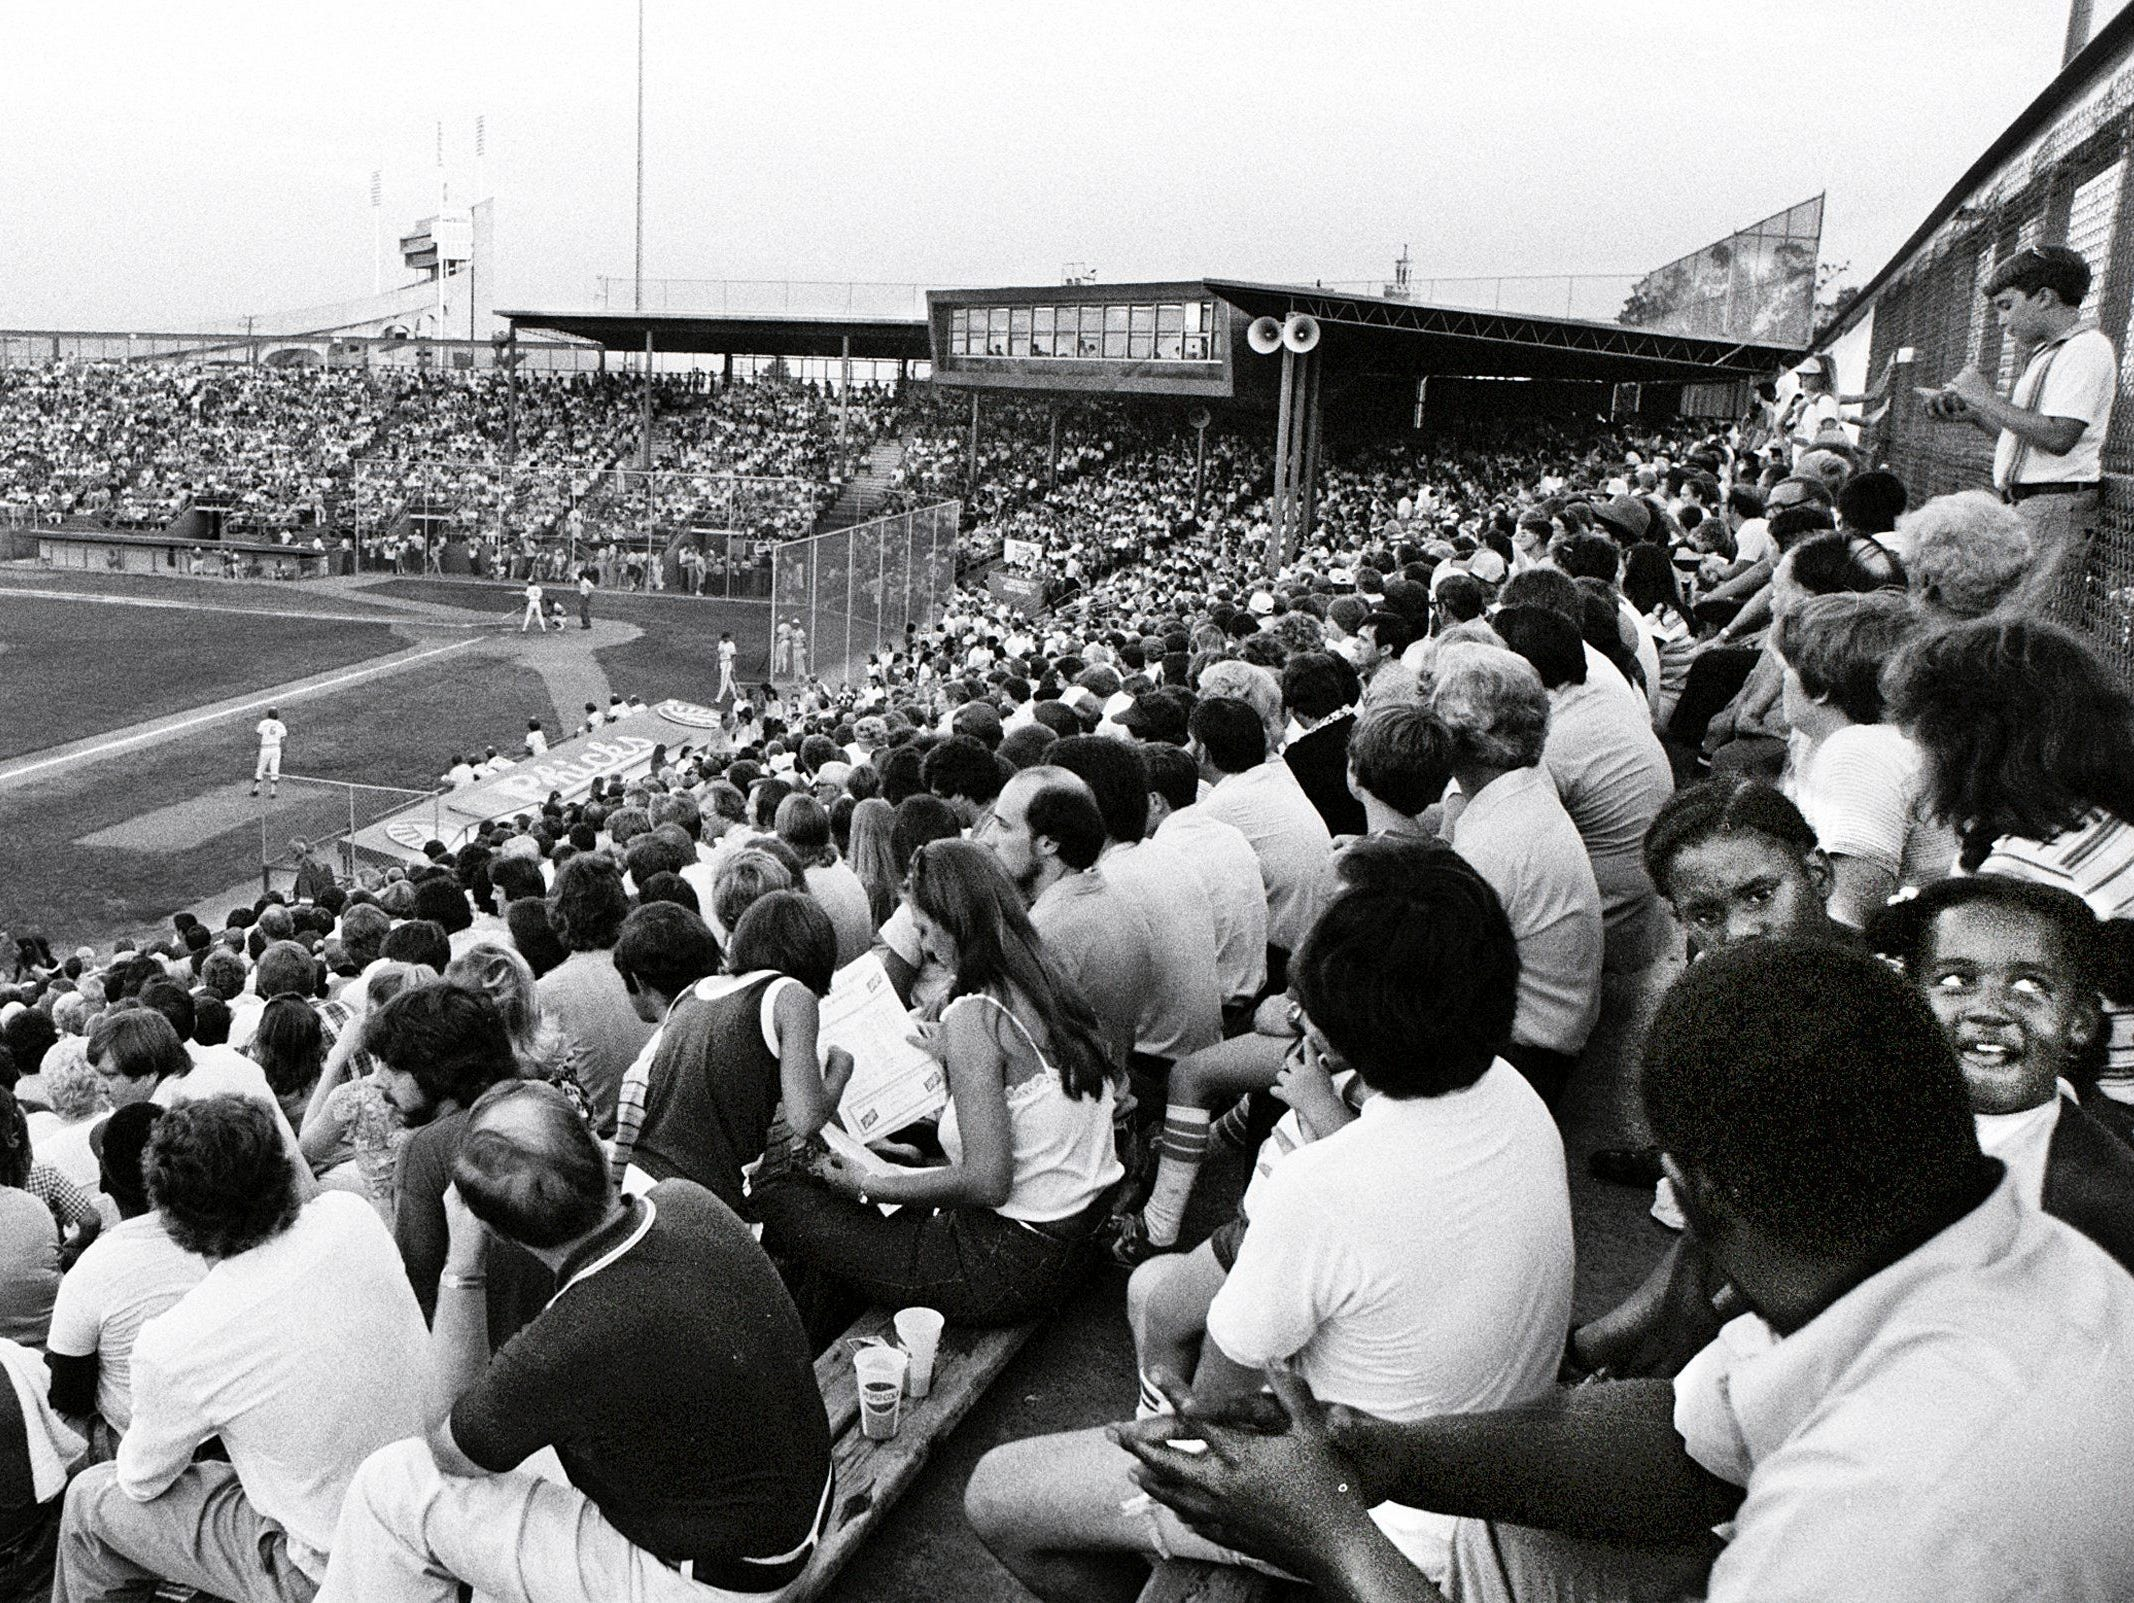 Tim McCarver Stadium on 14 Jul 1979 to watch as Rick Ramos and the Memphis Chicks out-duel Brent Strom and the Columbus Astros 1-0. It was the second largest crowd in the history of the stadium as 9,197 fans filled the stadium on opening night in 1978.